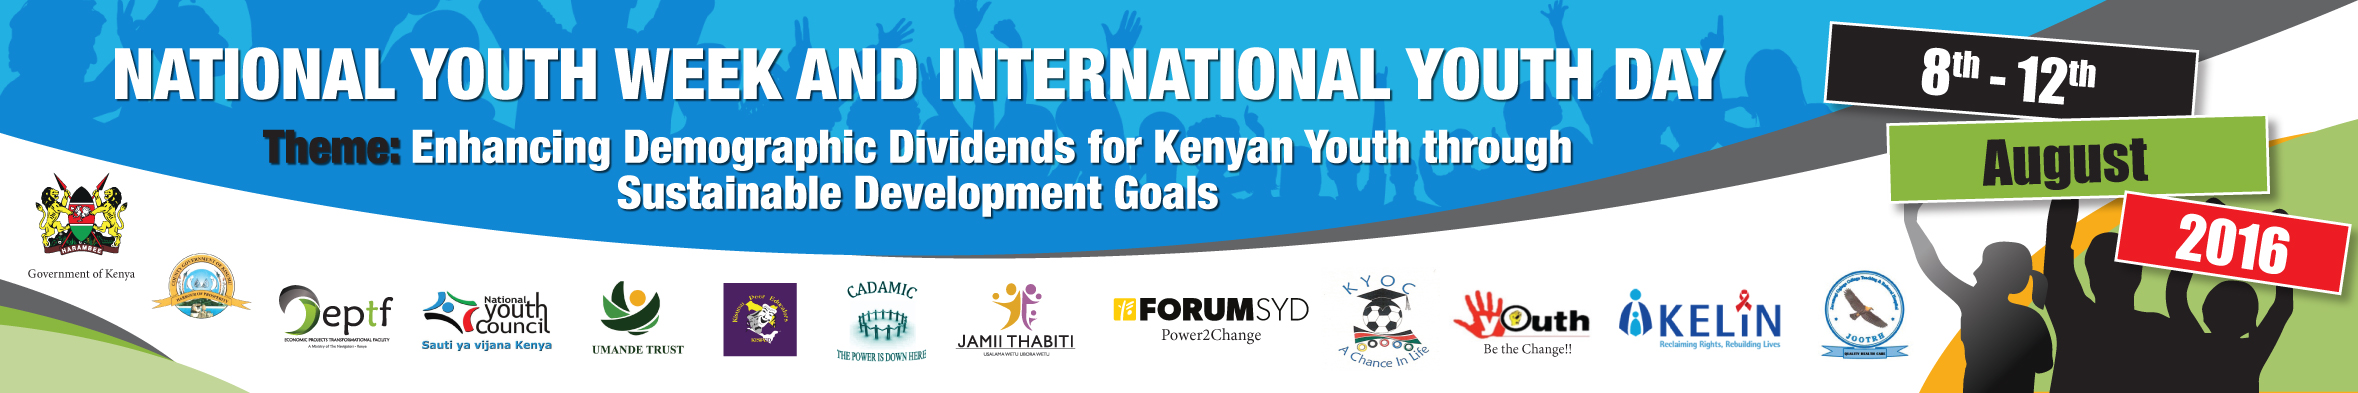 Its International Youth Day!